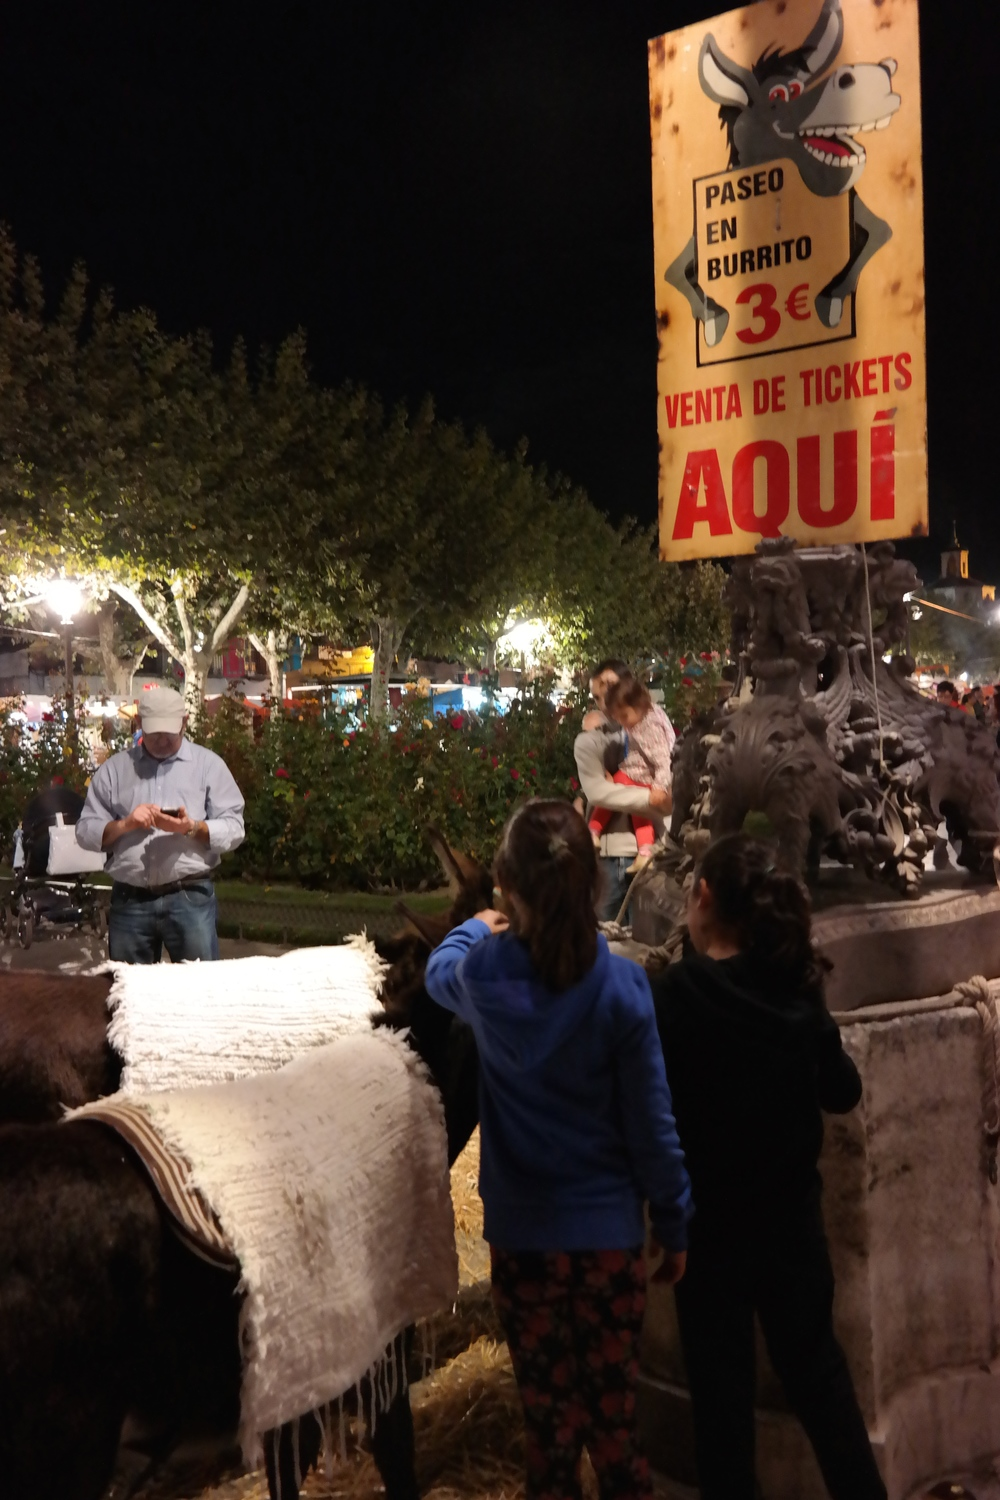 "I realize this isn't the best photo, but I had to get a picture of the ""Paseo en Burrito"" sign (Donkey Rides). The little kiddos riding the donkeys through town were absolutely precious."